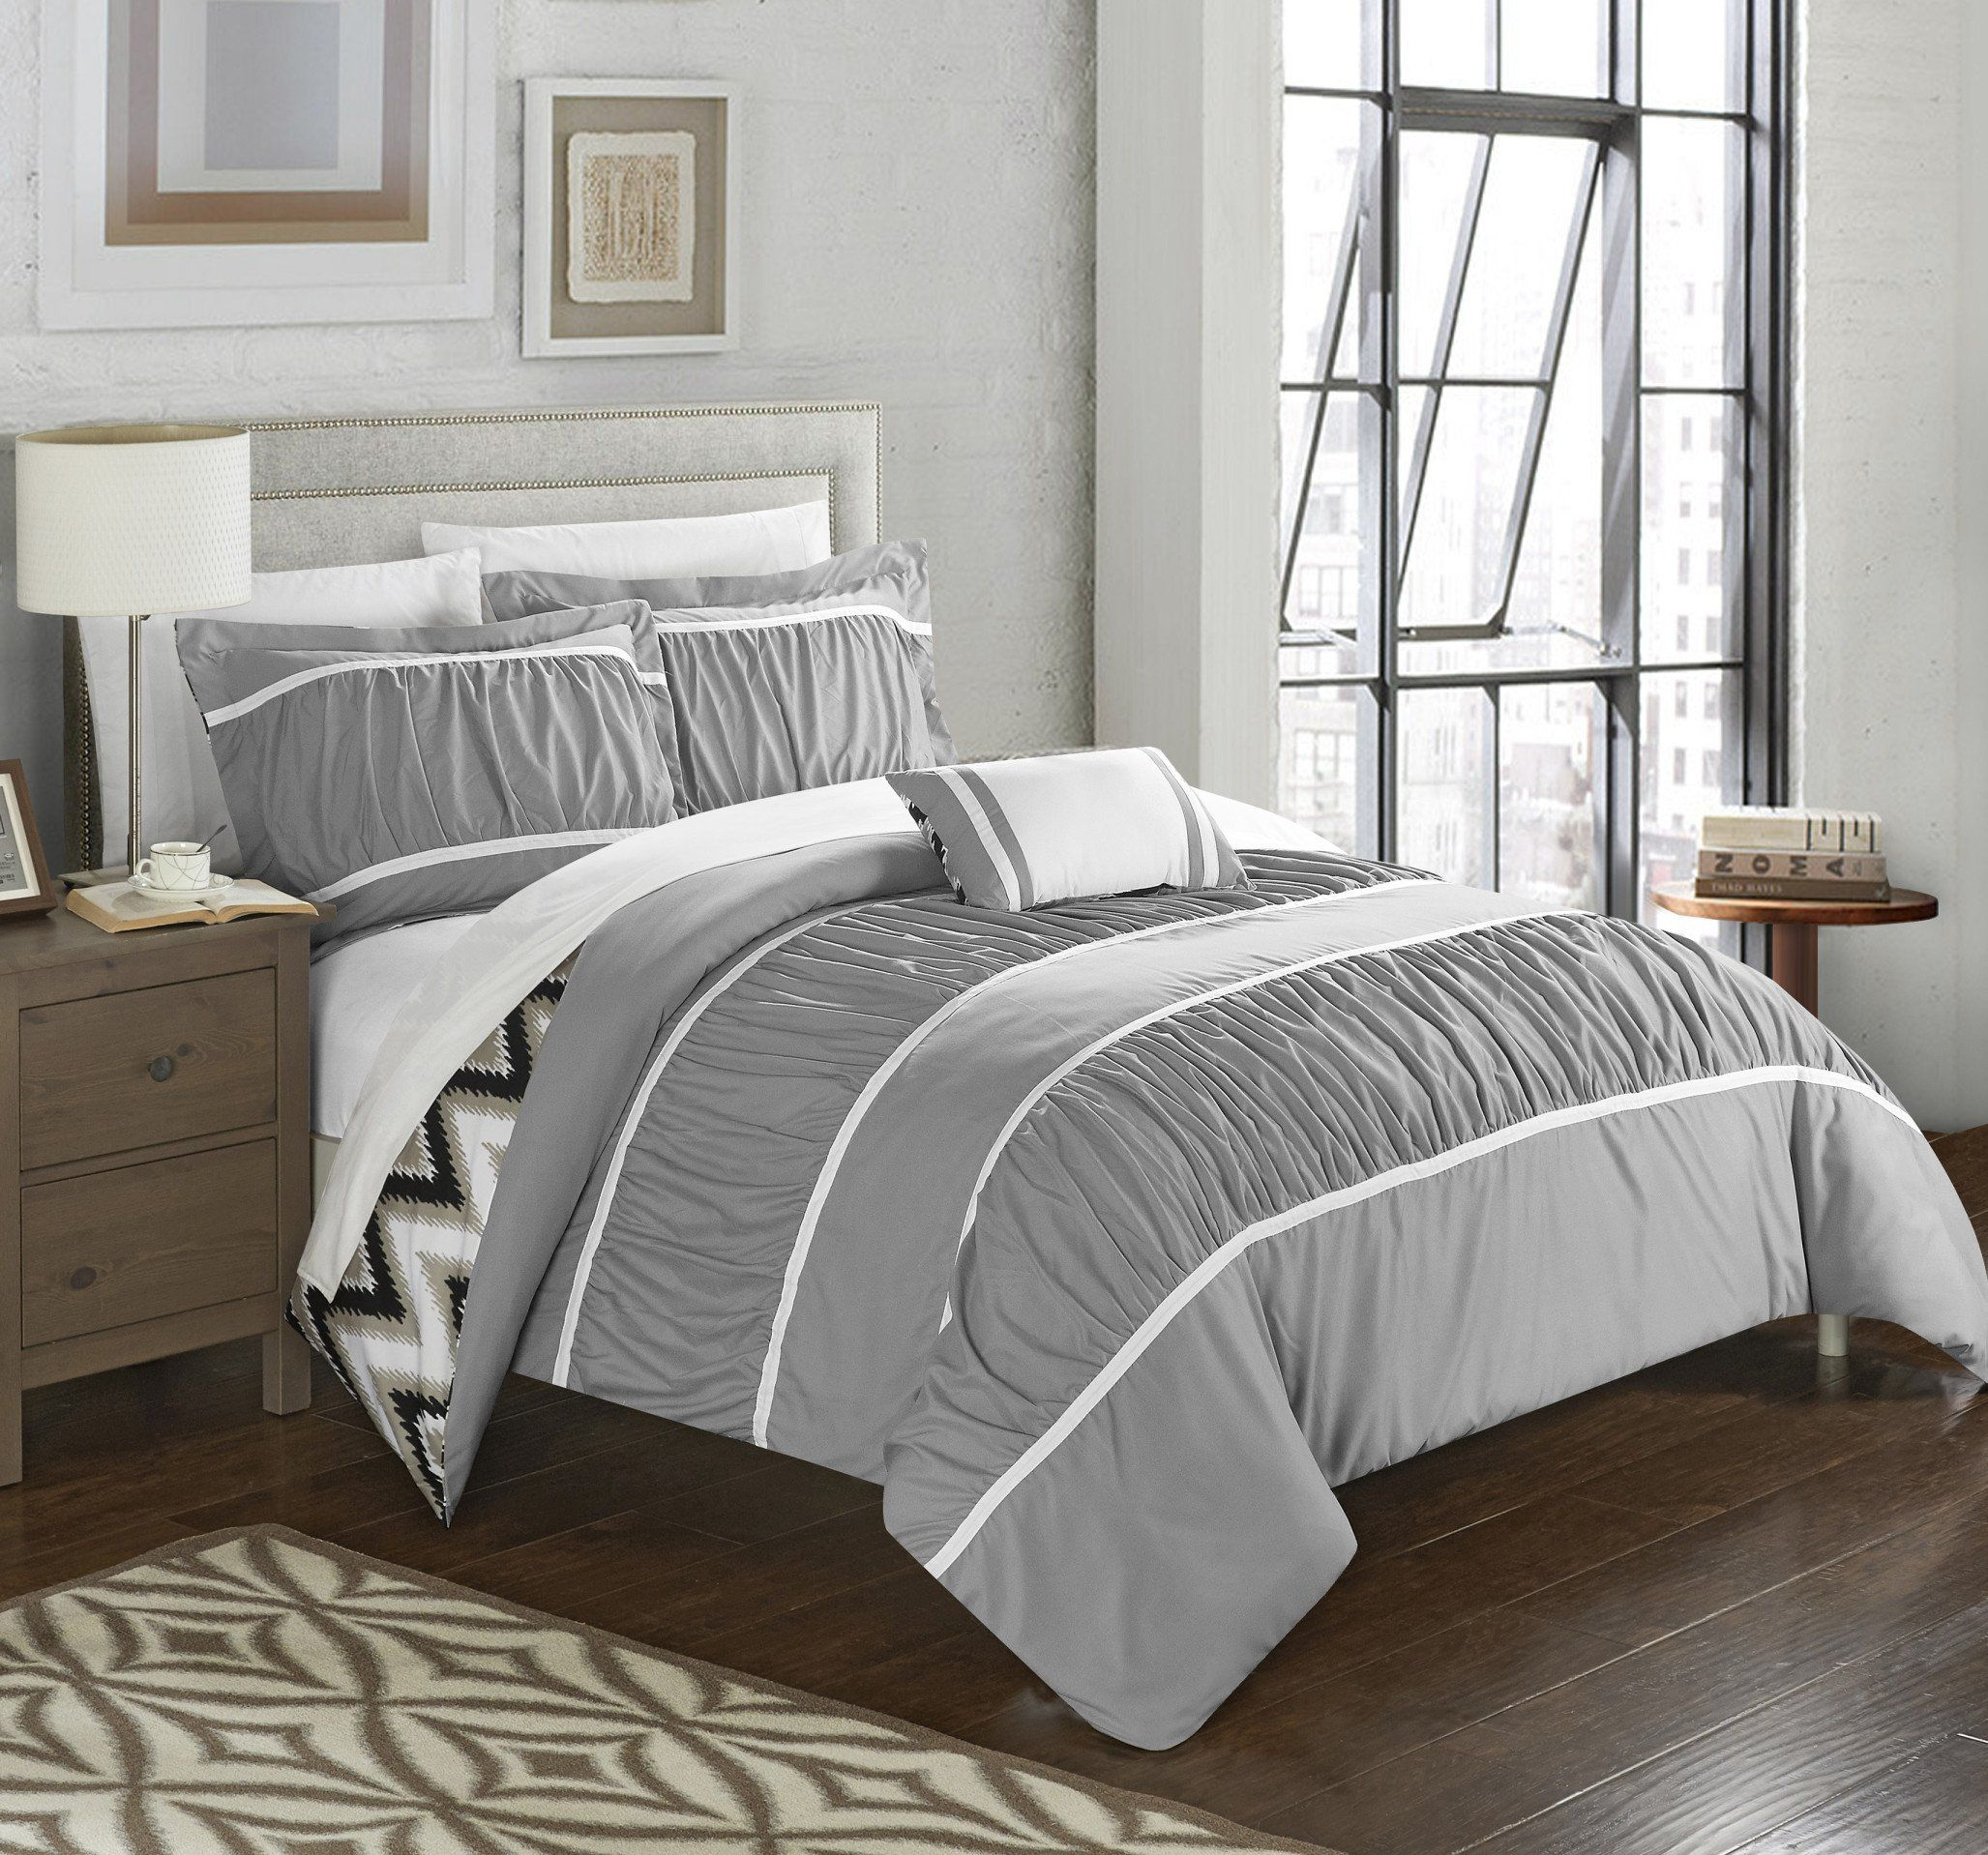 Chic Home Bella 8 Piece Comforter Set Reversible Ruffled Pleated